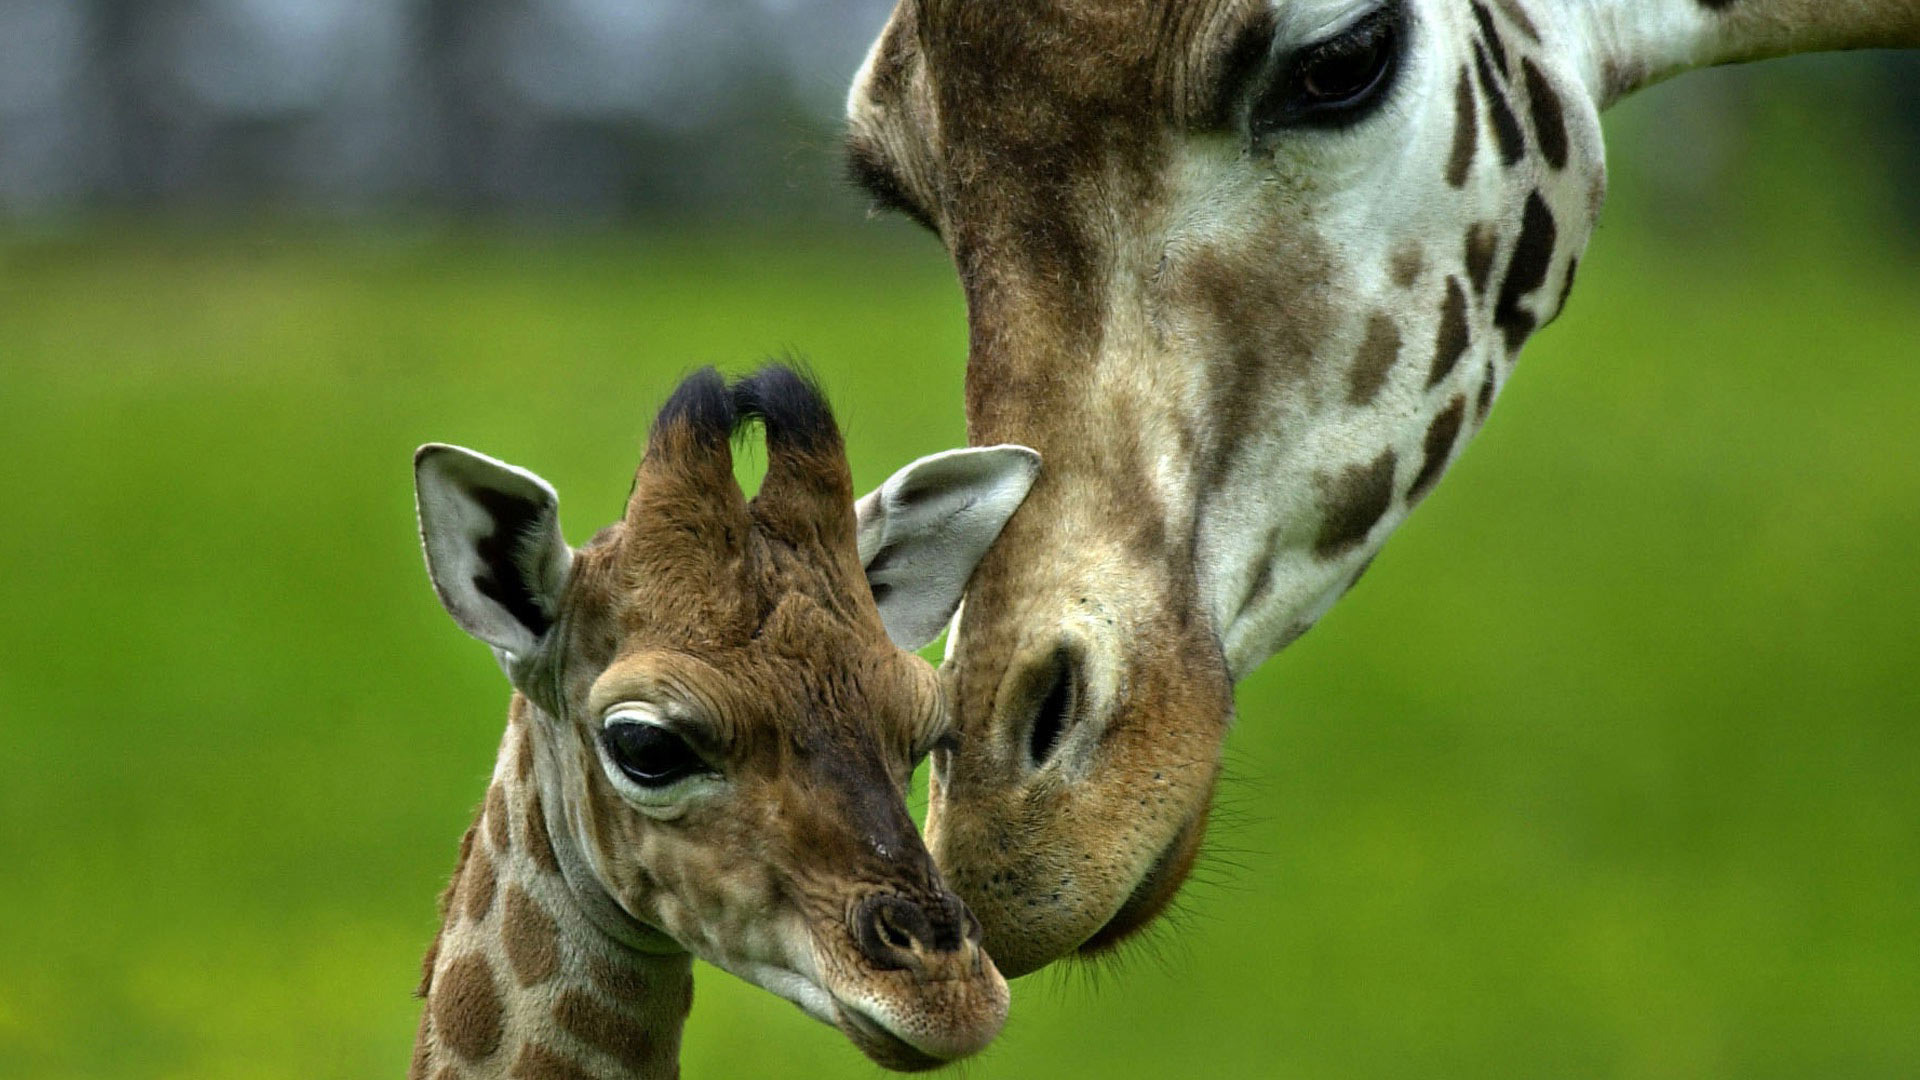 Adorable Baby Giraffe Photo